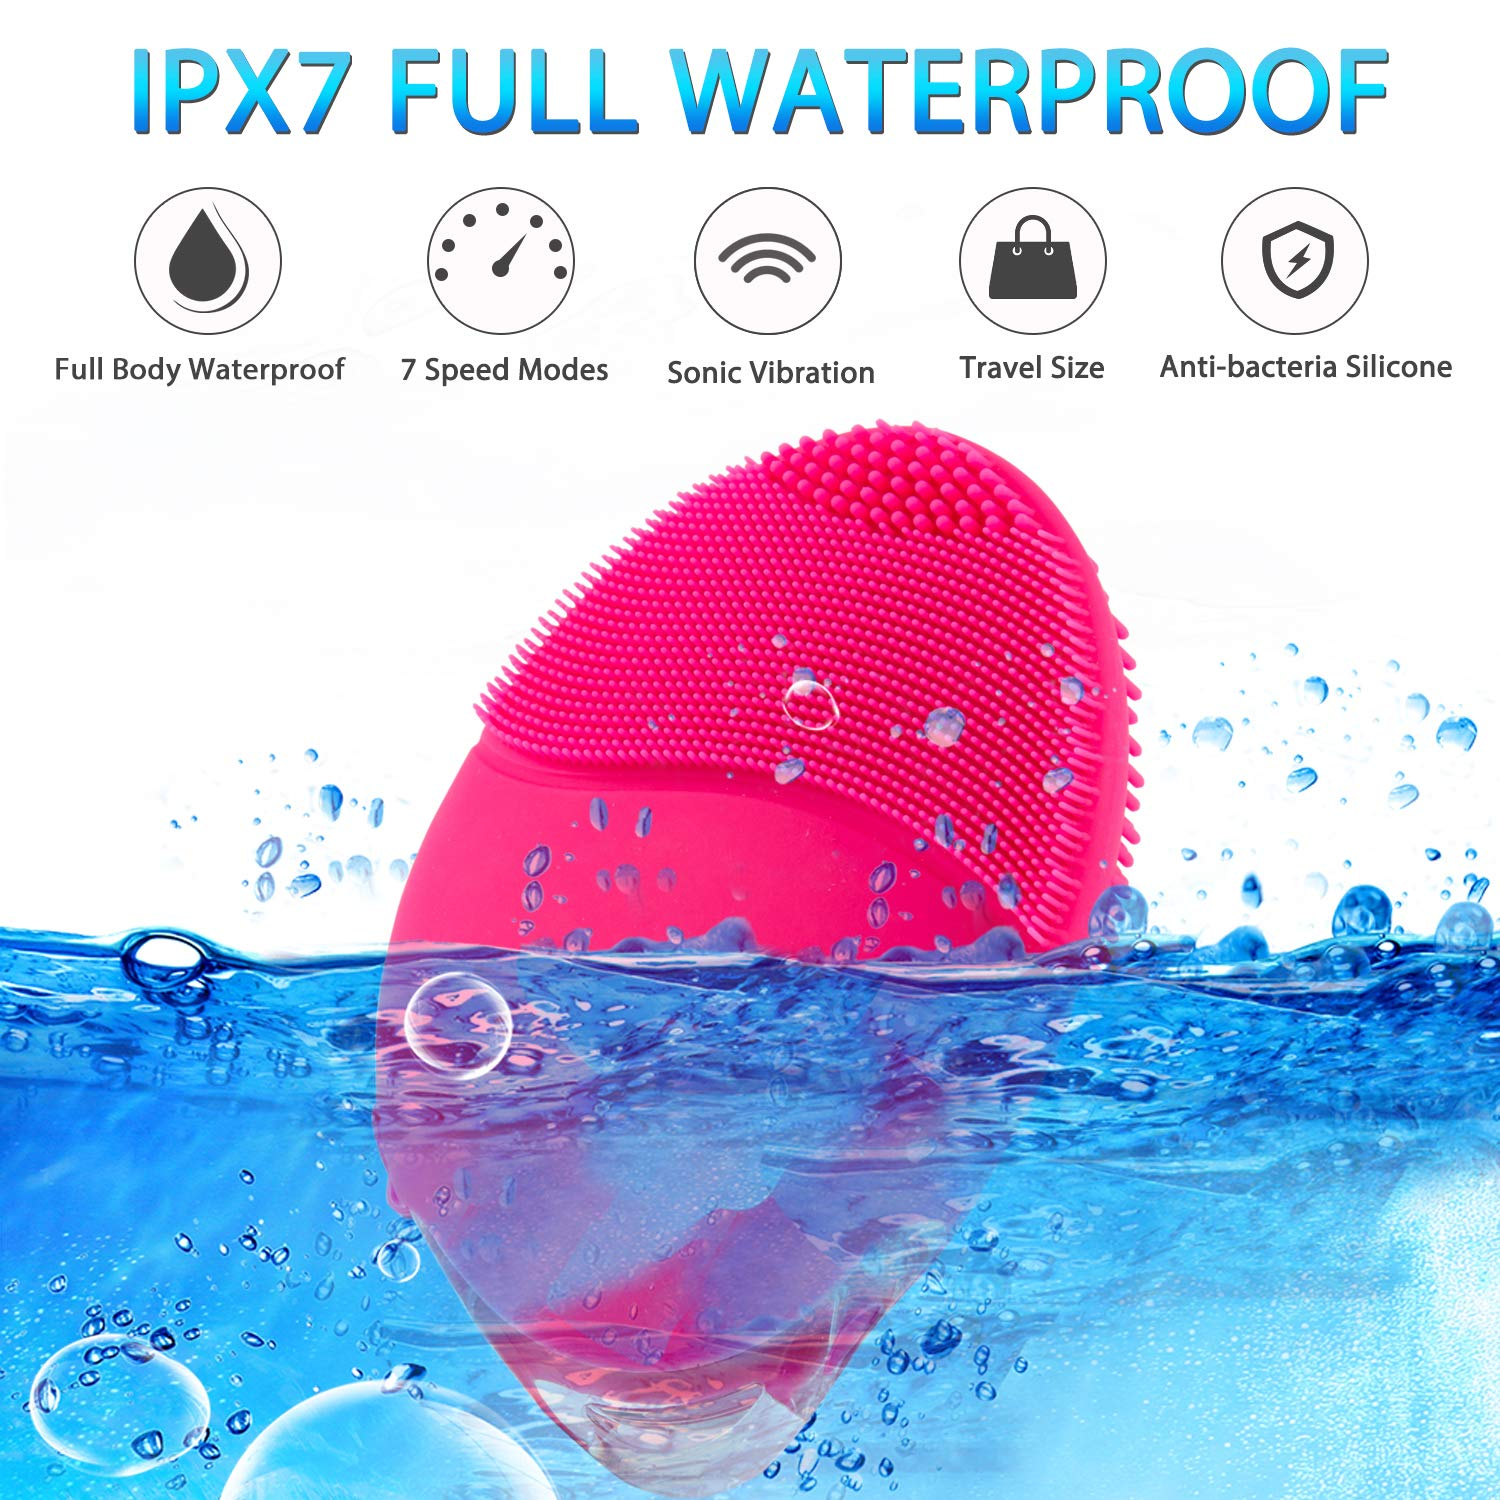 Facial Cleansing Brush, House Envy Sonic Face Brushes, Rechargeable Electric Cleanser Brush Silicone for Deep Cleaning, Removing Blackhead and Massage : Beauty & Personal Care